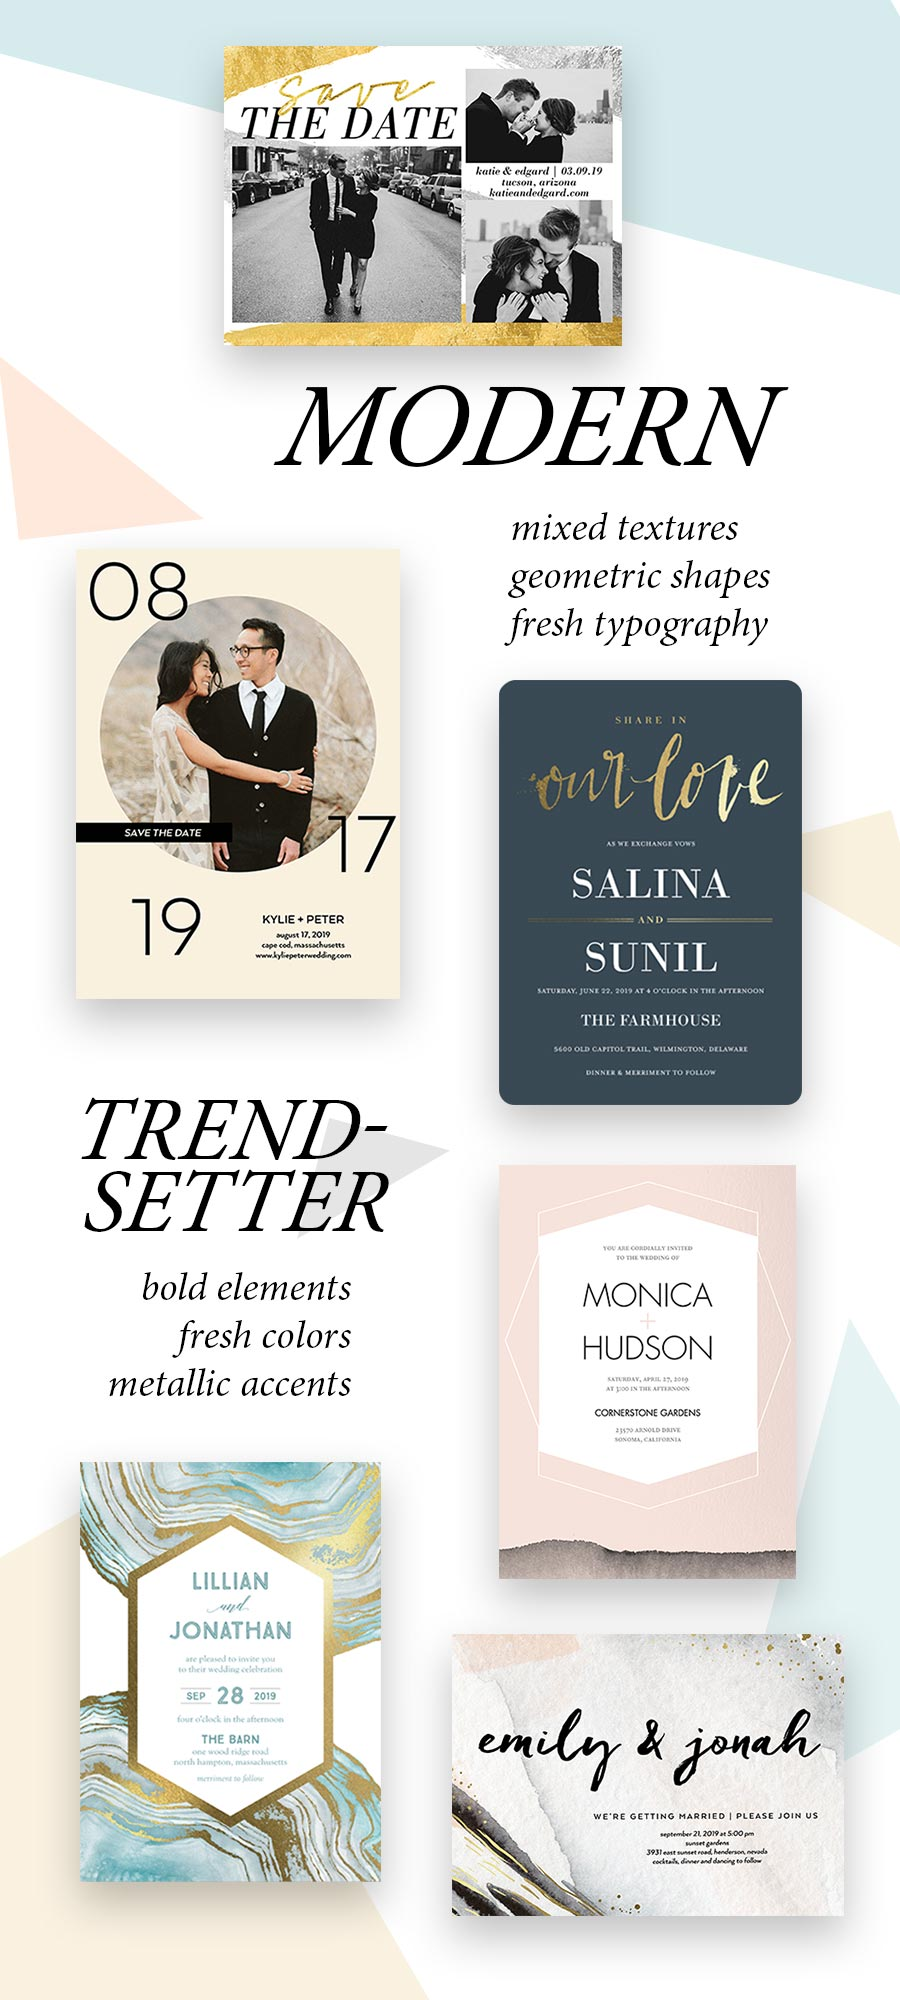 shutterfly wedding invitation save the date cards modern trend setting wedding styles